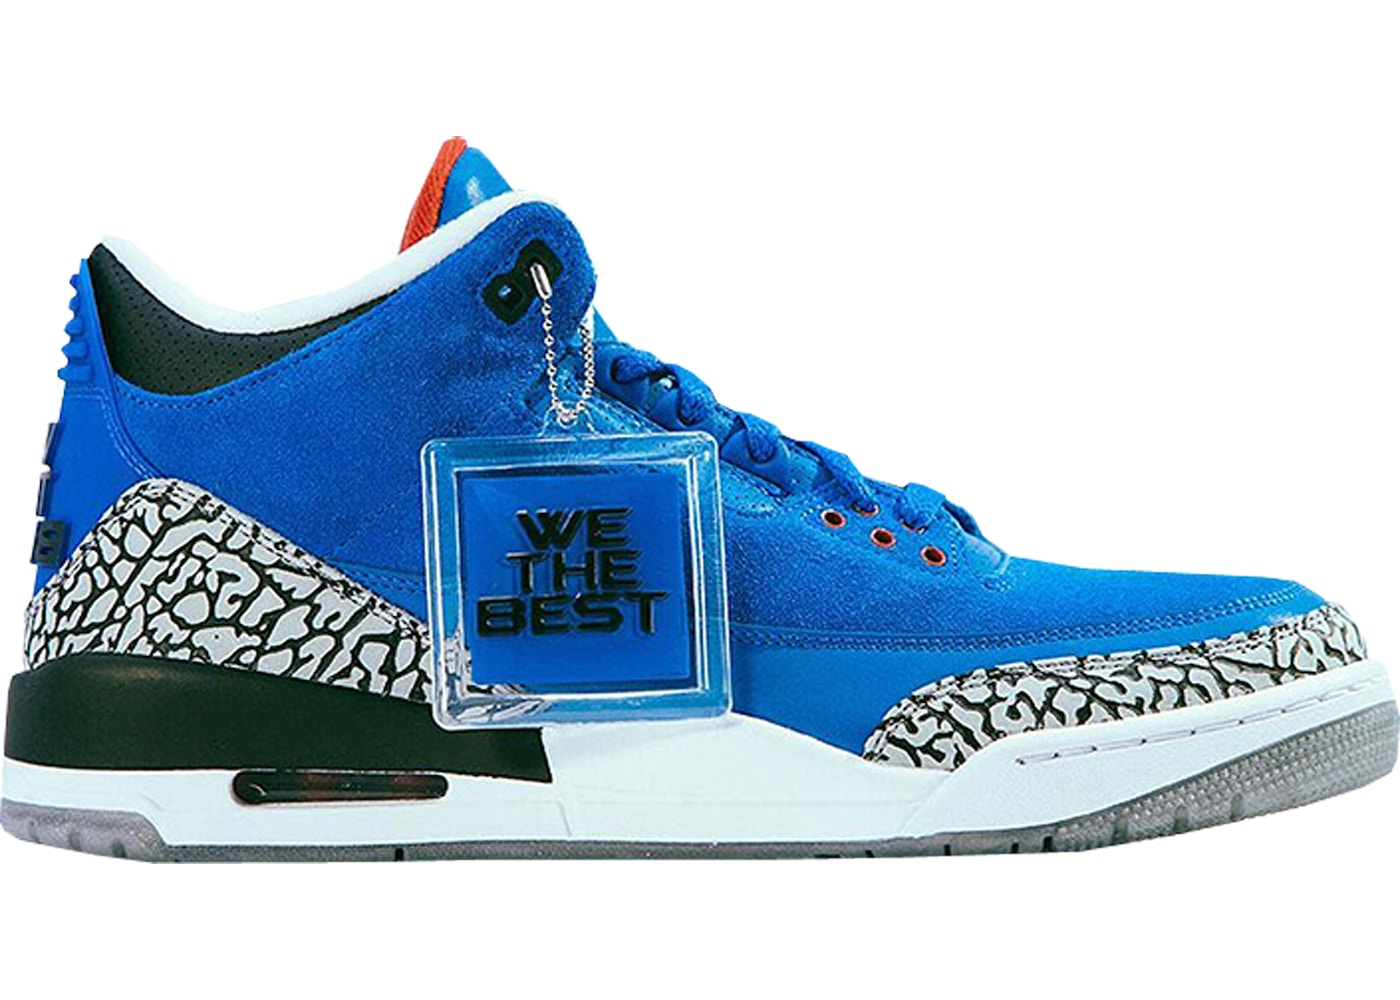 e1f2ce579a0 Sell. or Ask. Size: 10.5. View All Bids. Jordan 3 Retro DJ Khaled ...